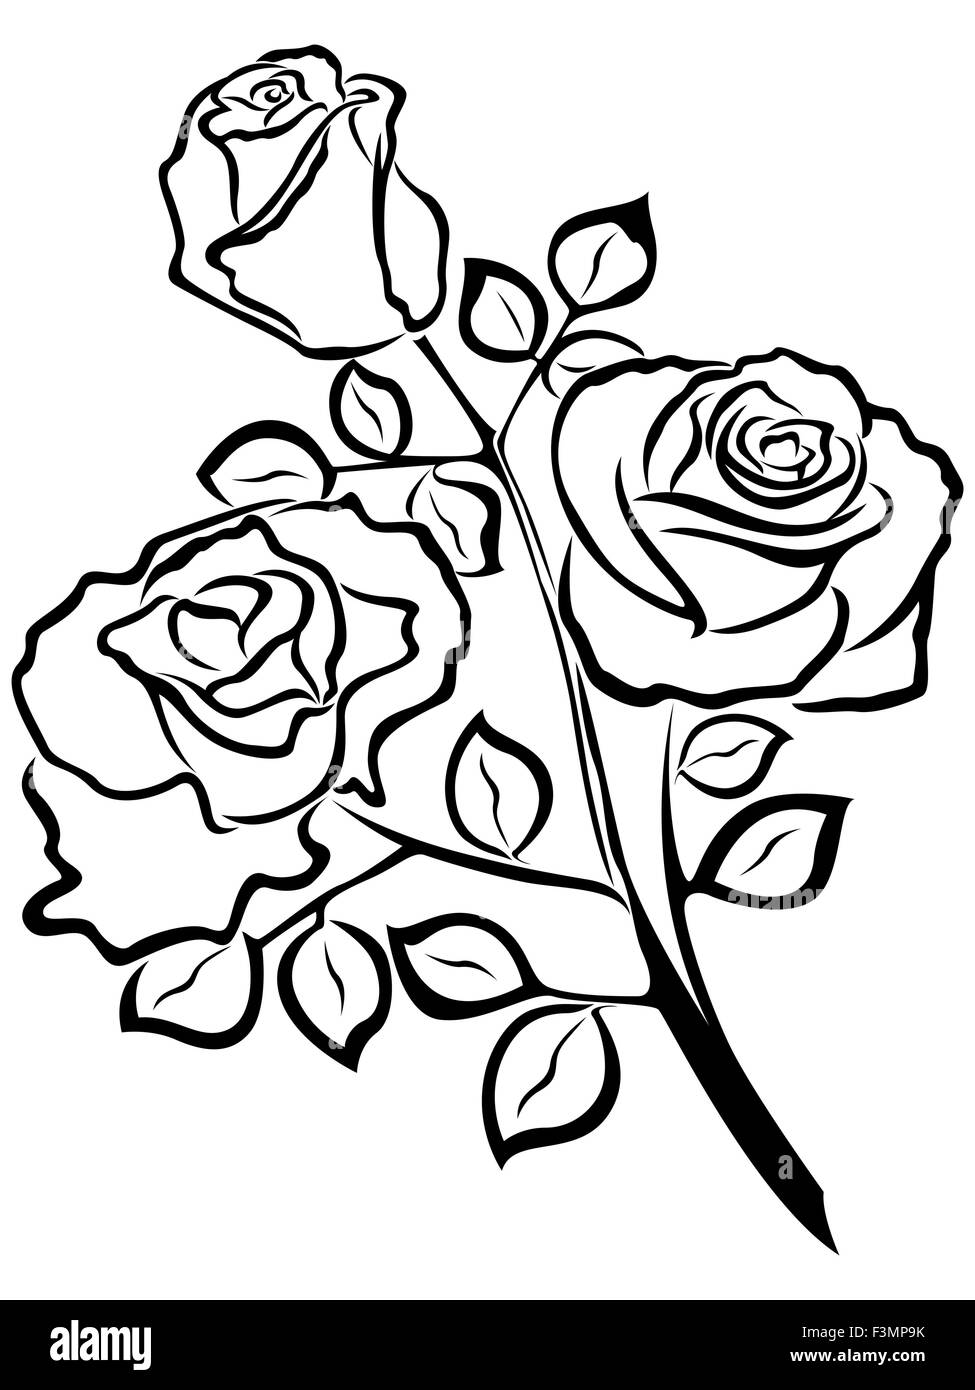 Black Outline Of Rose Flowers Isolated On A White